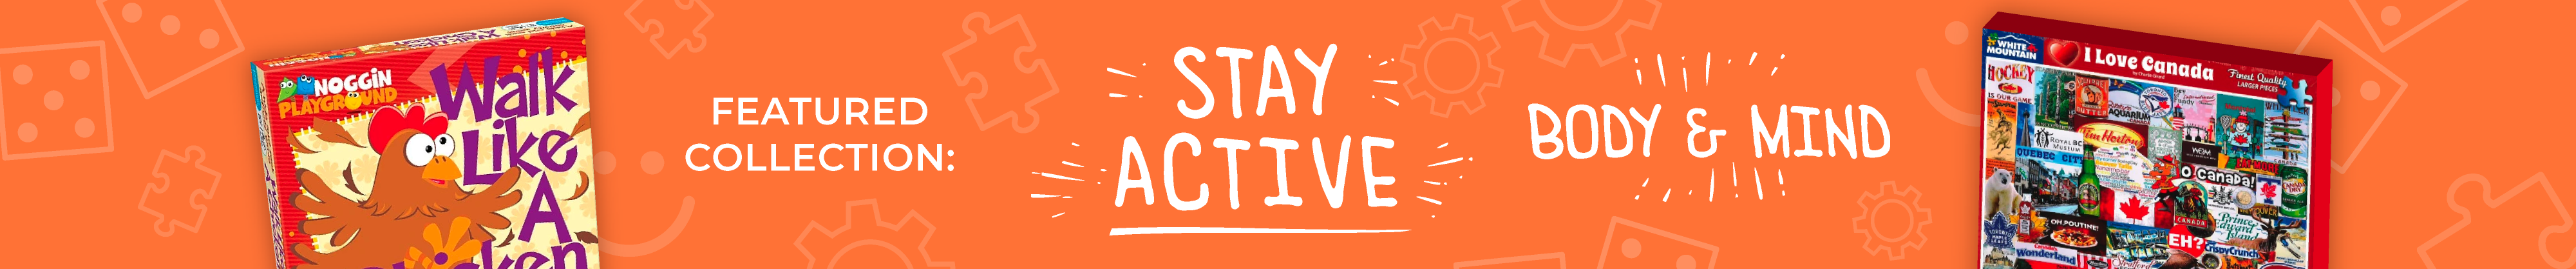 Stay Active - Body and Mind